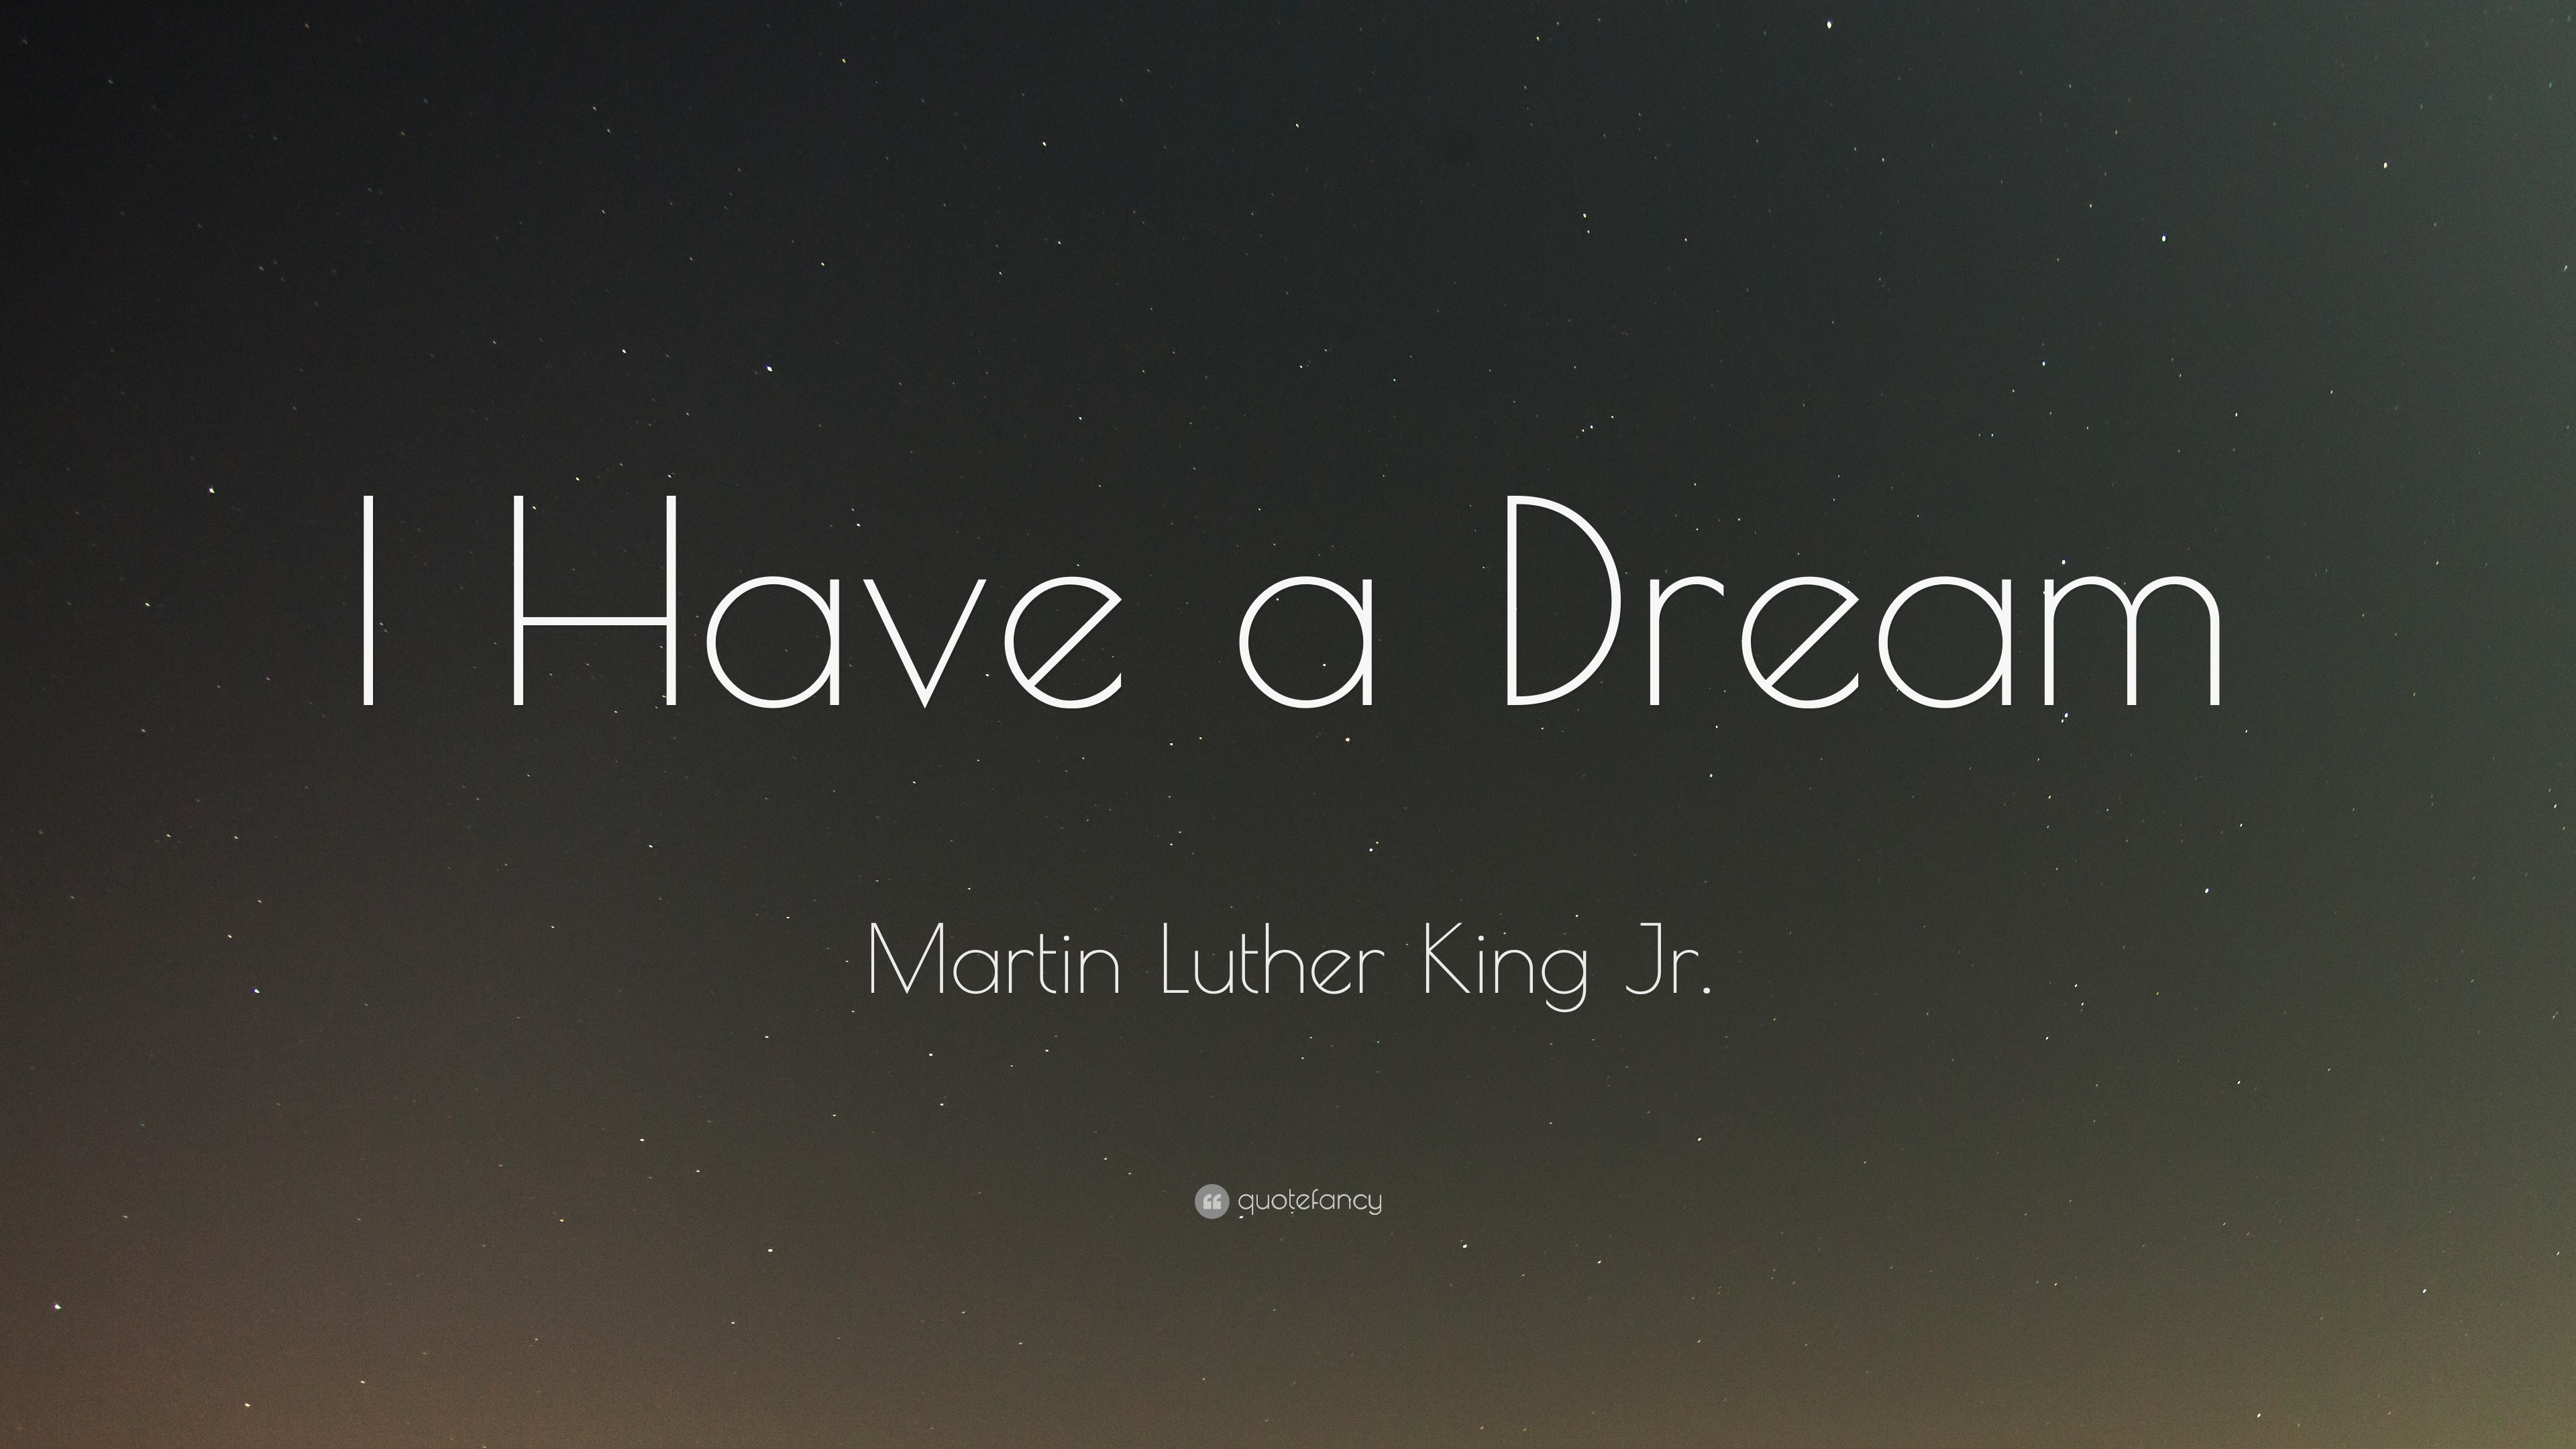 i have a dream by martin Creator: martin luther king, speech made 28th of august 1963, lincoln memorial washington dc purpose: call for racial equality and an end to discrimination.